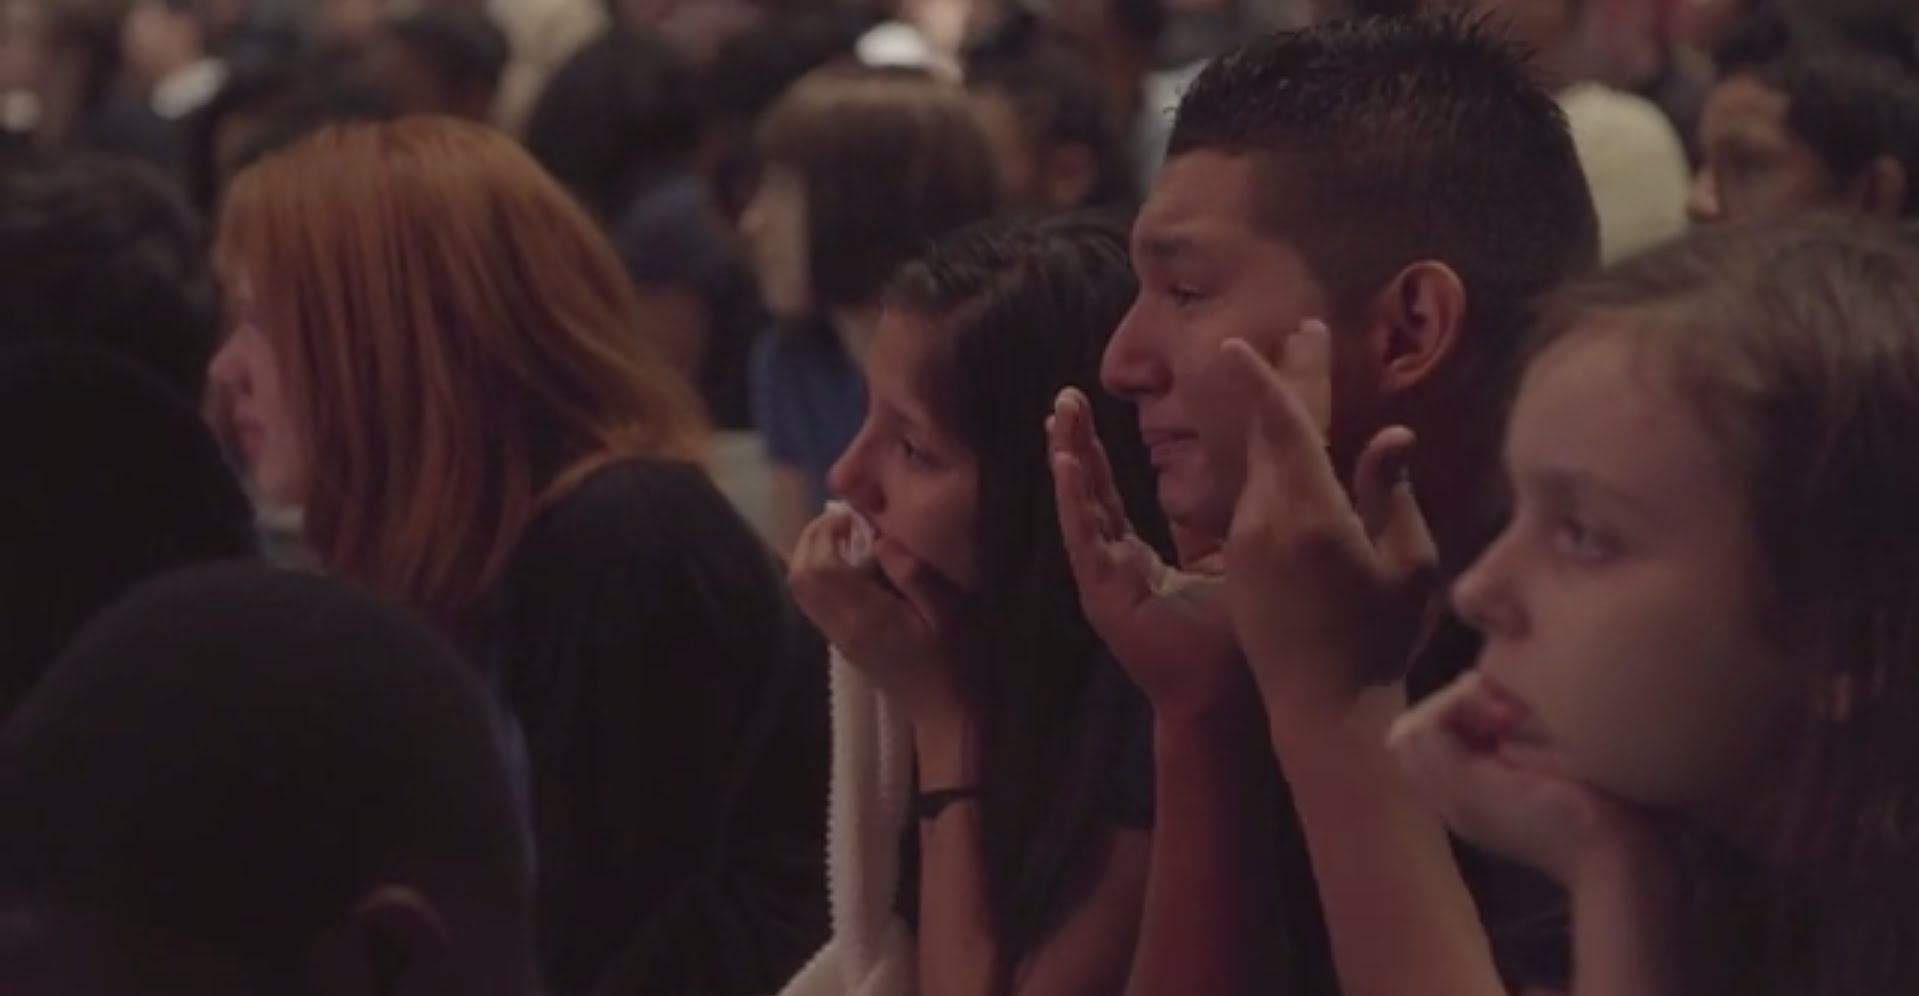 A Man's Message Brought a Middle School Class to Tears